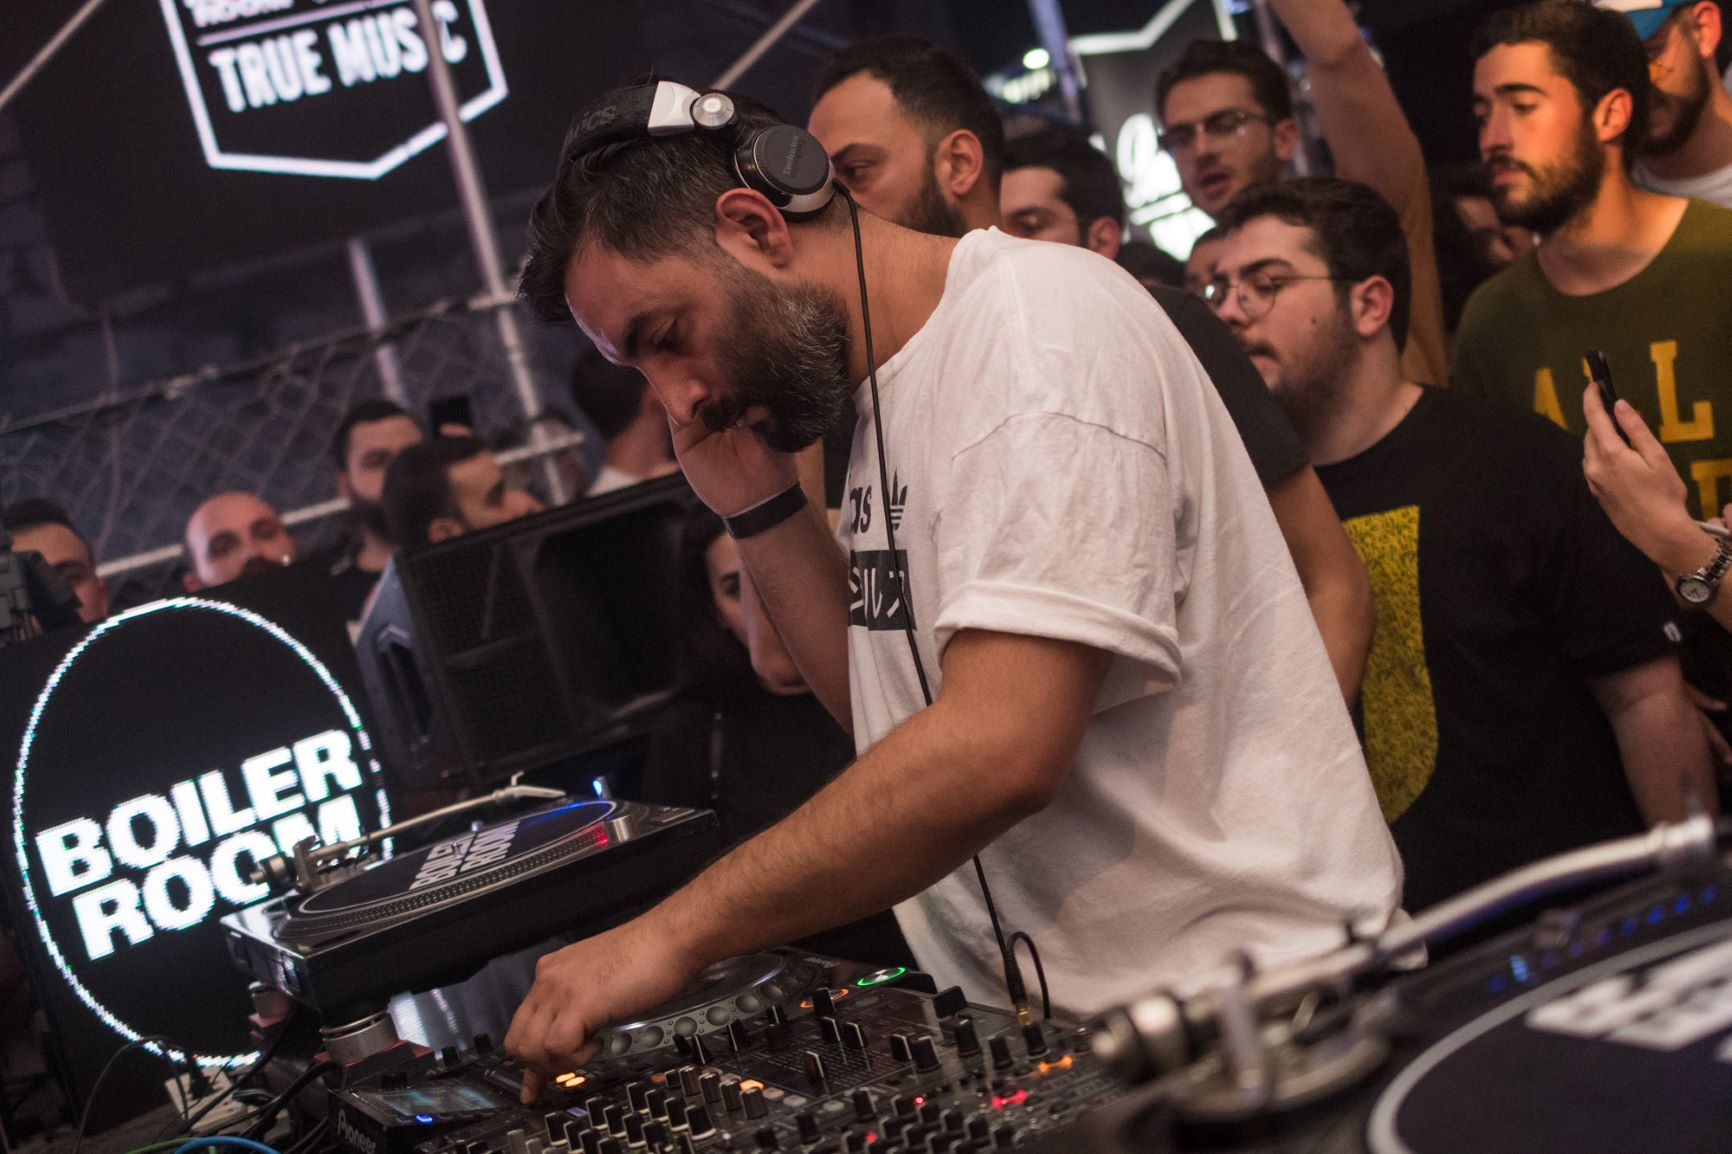 ballantines-boilerroom-truemusic-hybrid-sounds-lebanon-jad-taleb